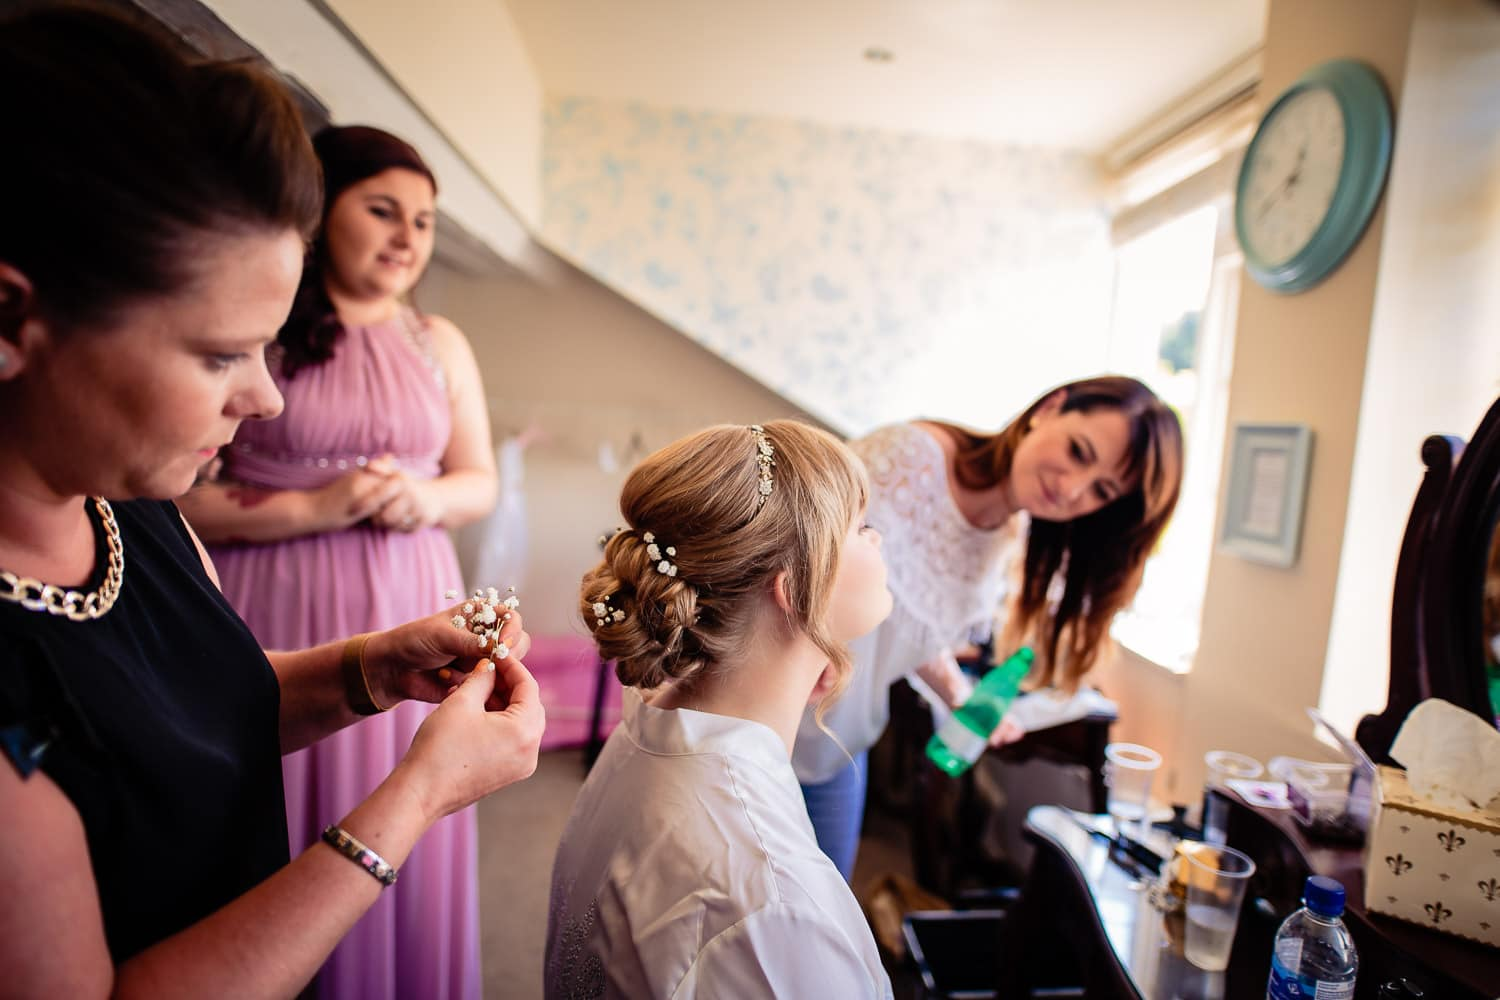 bridal party smile and share good times during preparations by Warwick House Wedding Photography